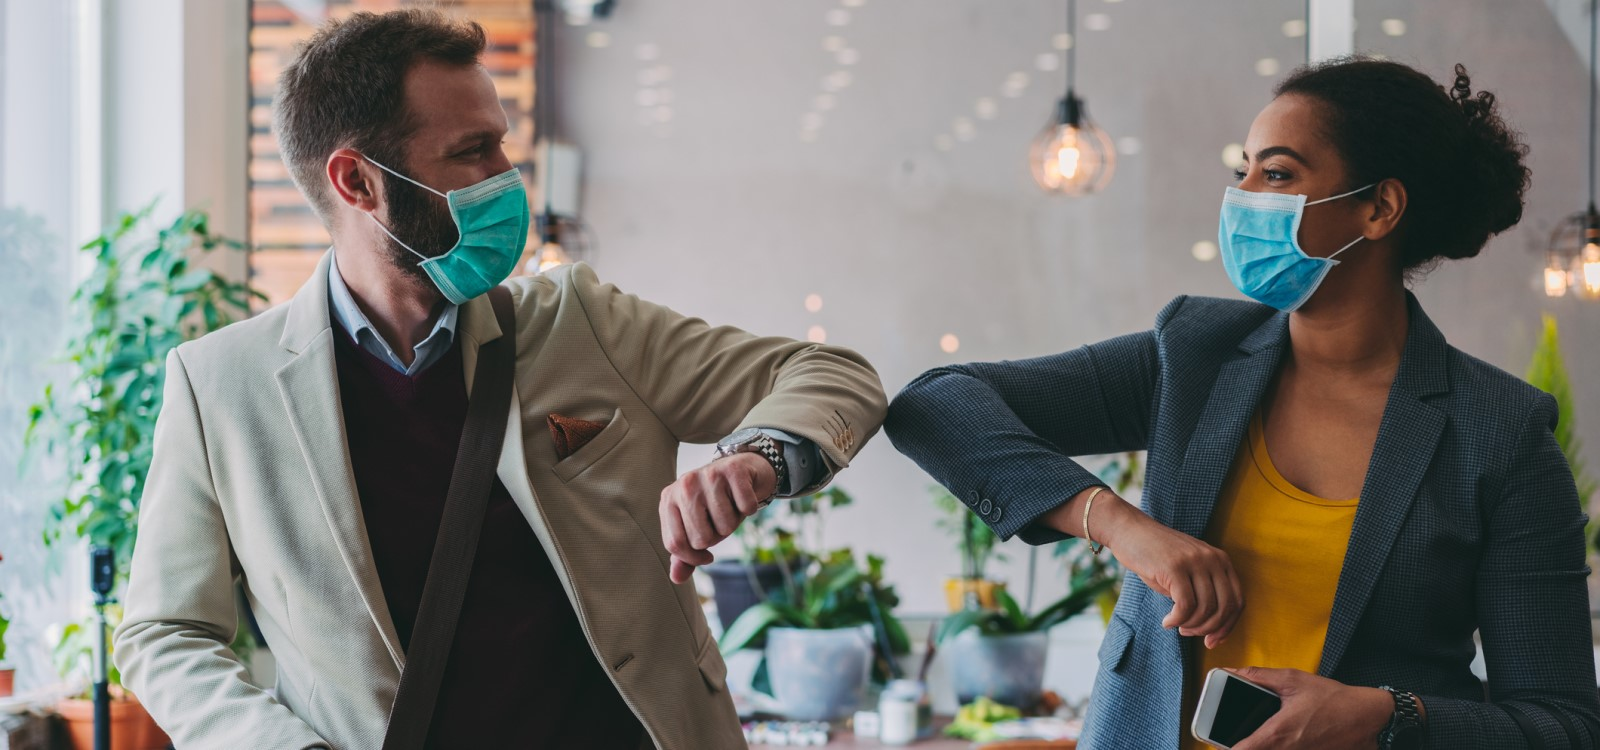 Business people greeting during COVID-19 pandemic, elbow bump | coronavirus for businesses in multiple states